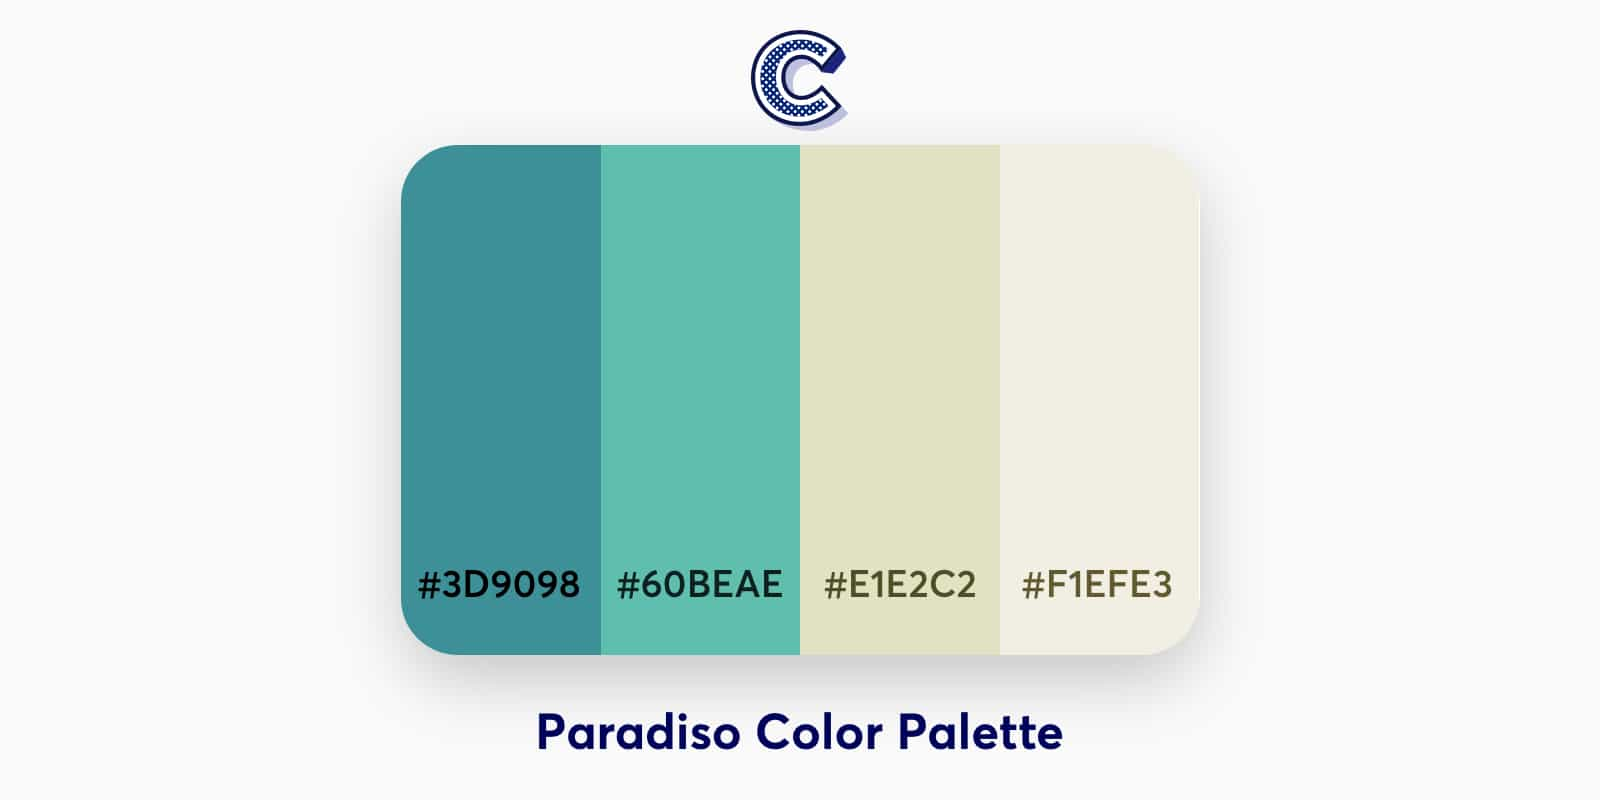 the featured image of paradiso color palette